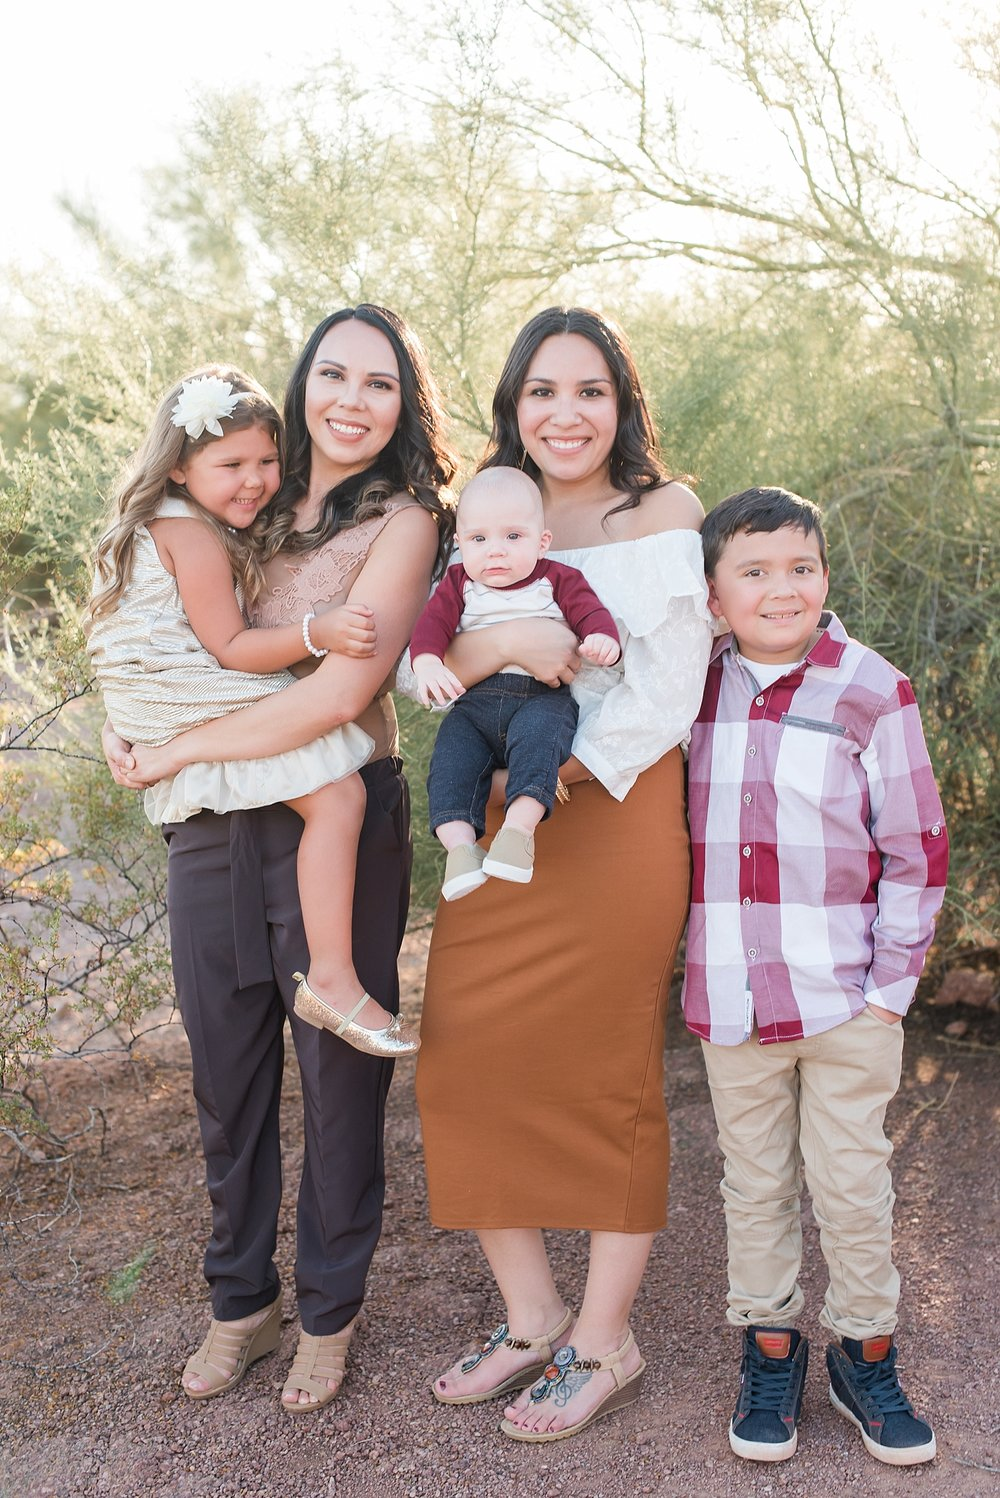 Rodriguez family photo session at Papago Park in Phoenix,  Arizona. Photos by Jade Min Photography.